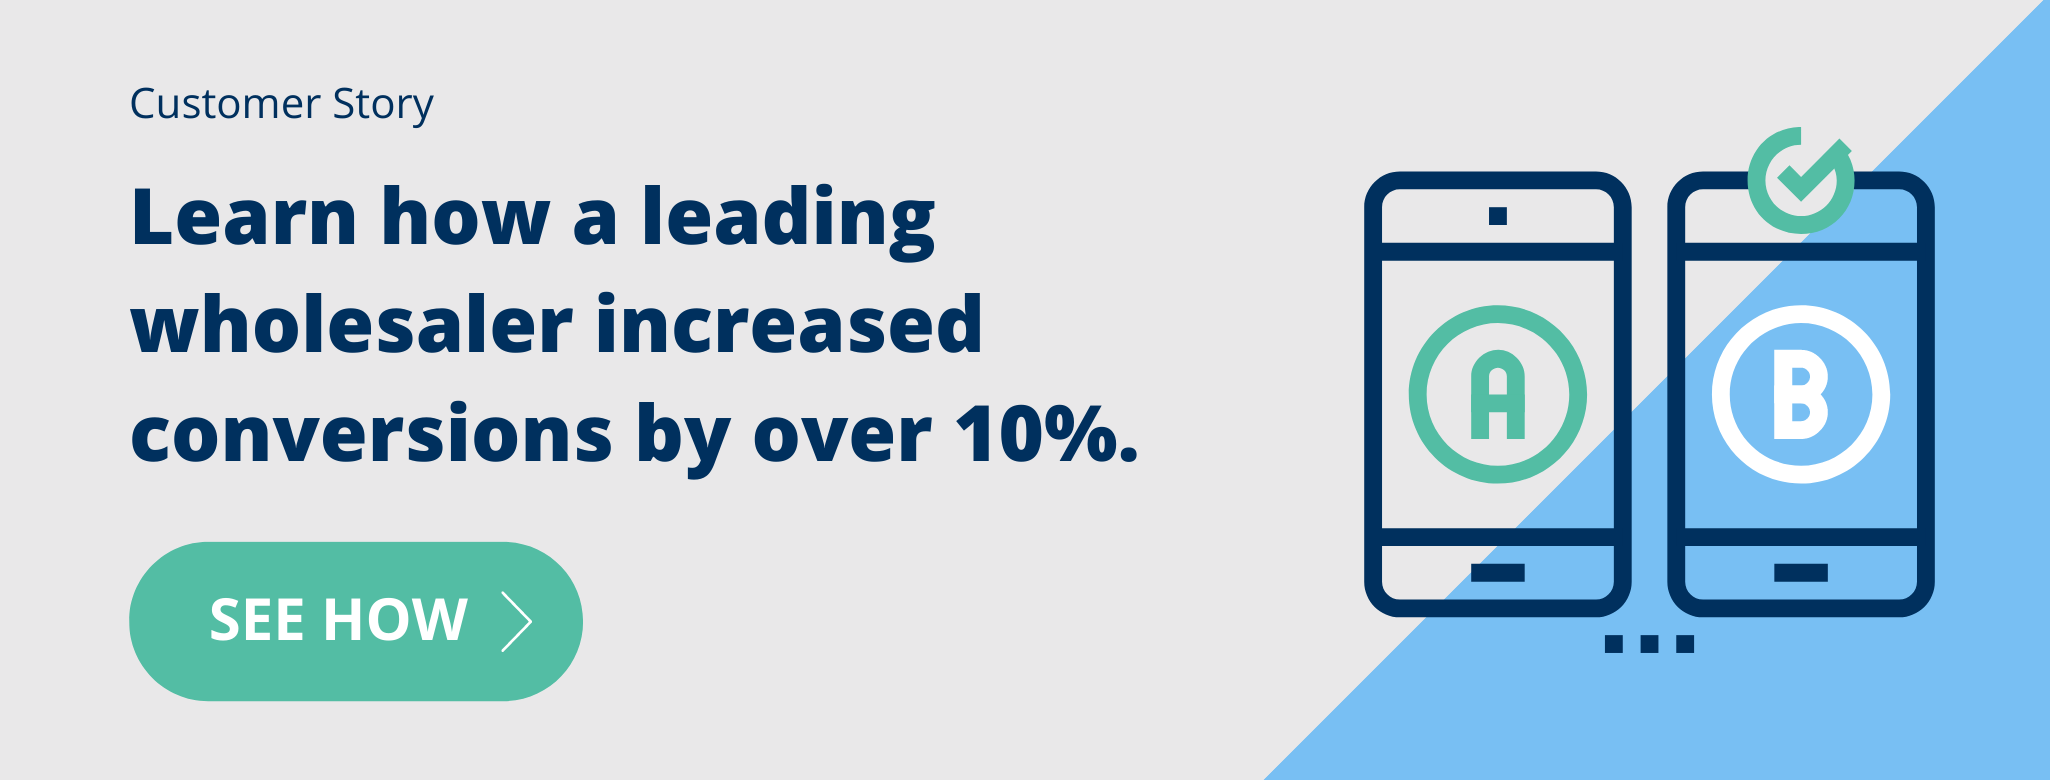 See how a leading wholesaler increased conversions by over 10%.